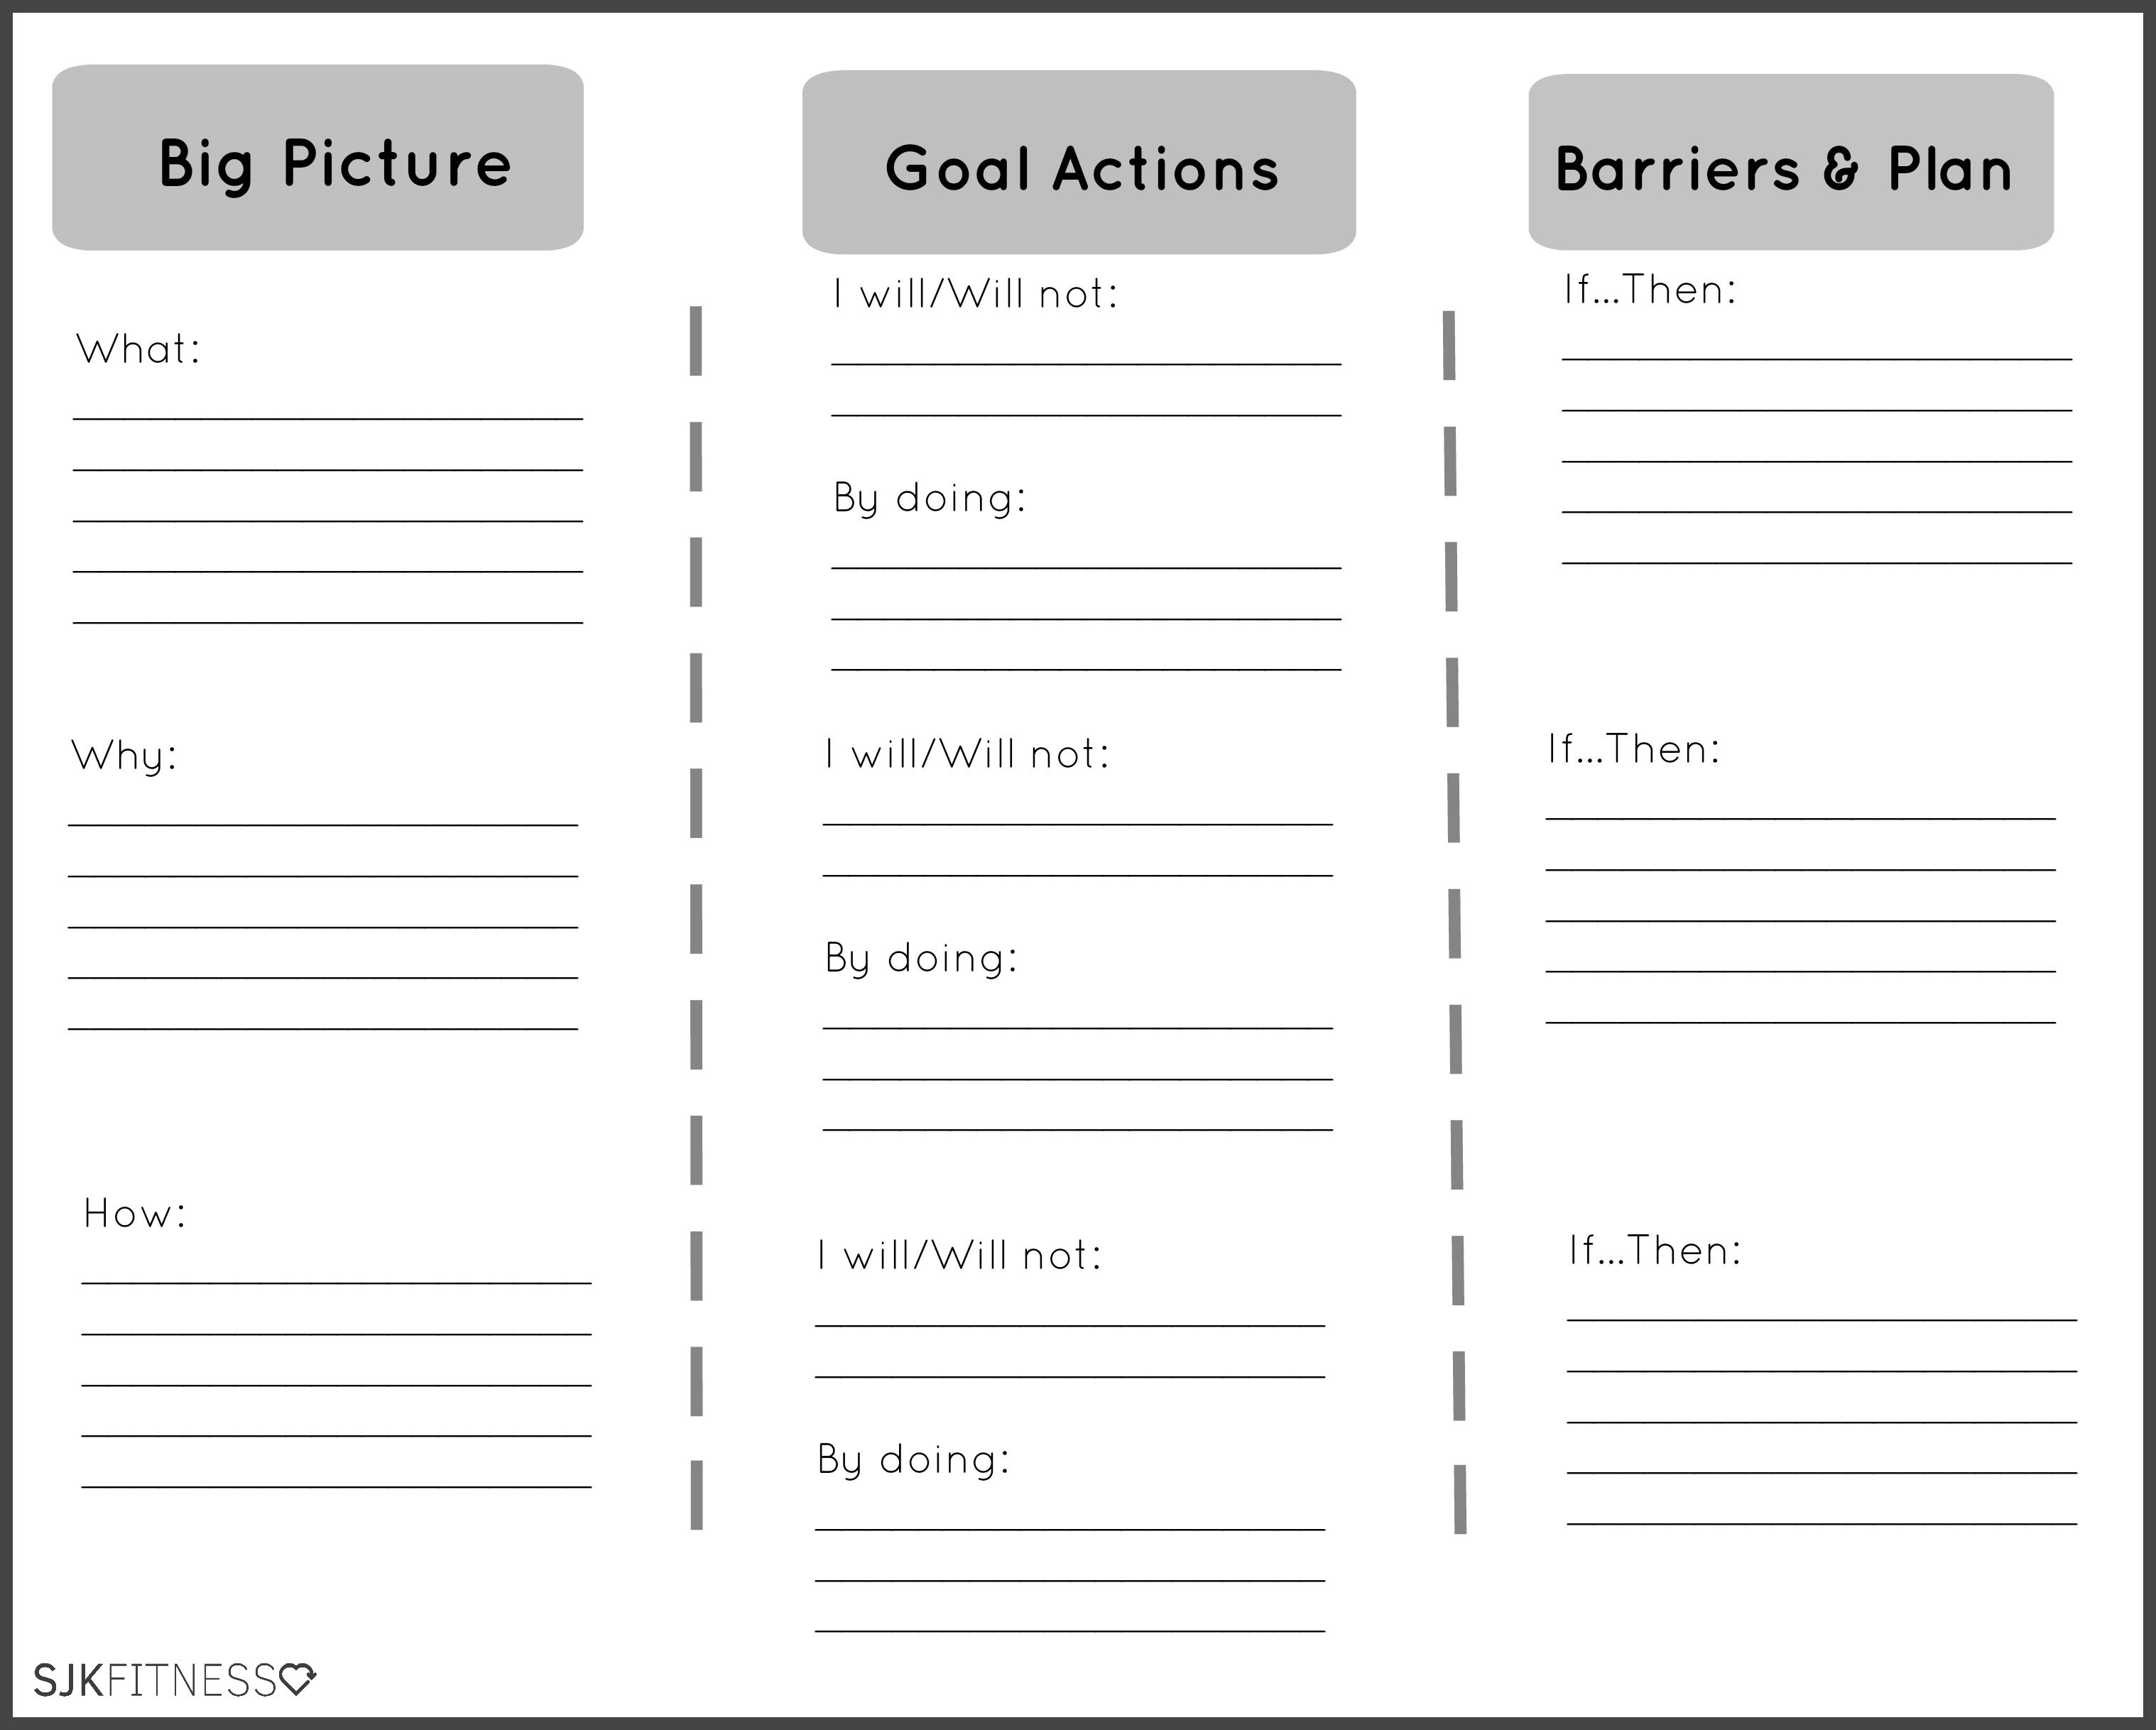 Worksheets Life Goals Worksheet health coaching goals worksheet simply well pinterest worksheet